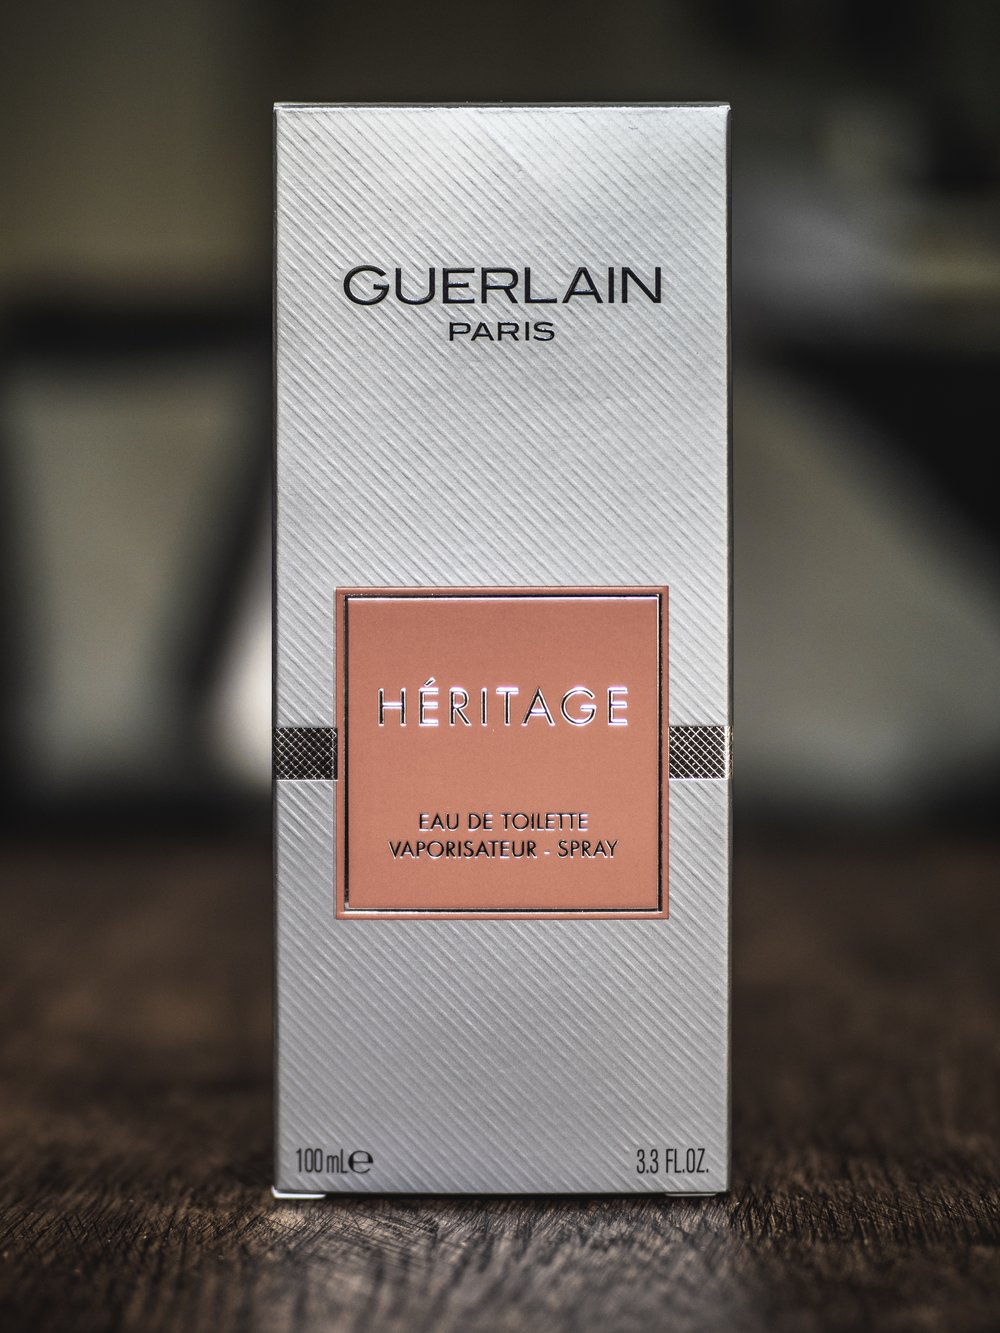 Guerlain Héritage Review